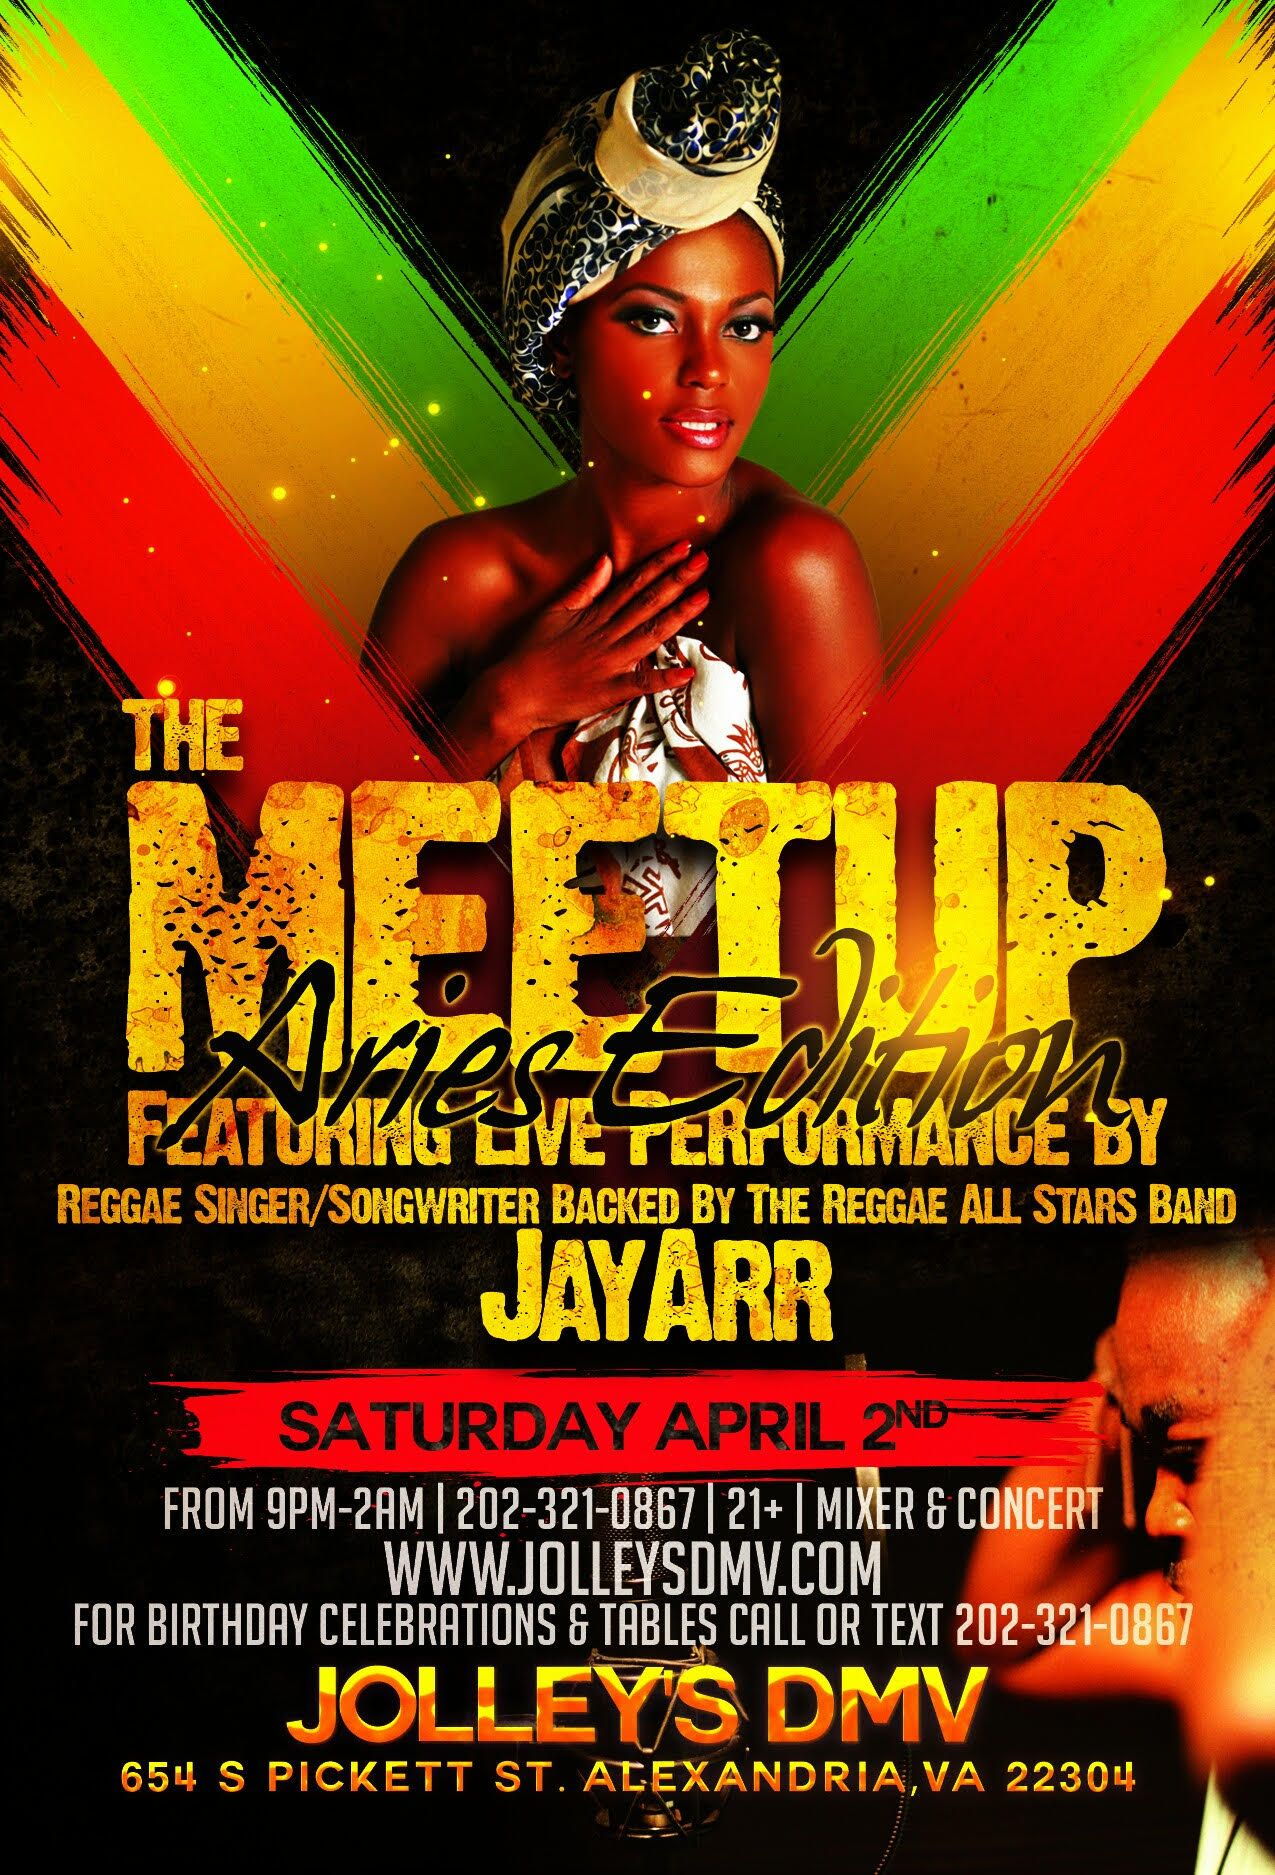 The Meetup A Monthly African Caribbean Social Mixer In Alexandria Virginia Beginning Saturday April 2nd Jolly S Dmv 654 S Meetup Reggae Artists Songwriting